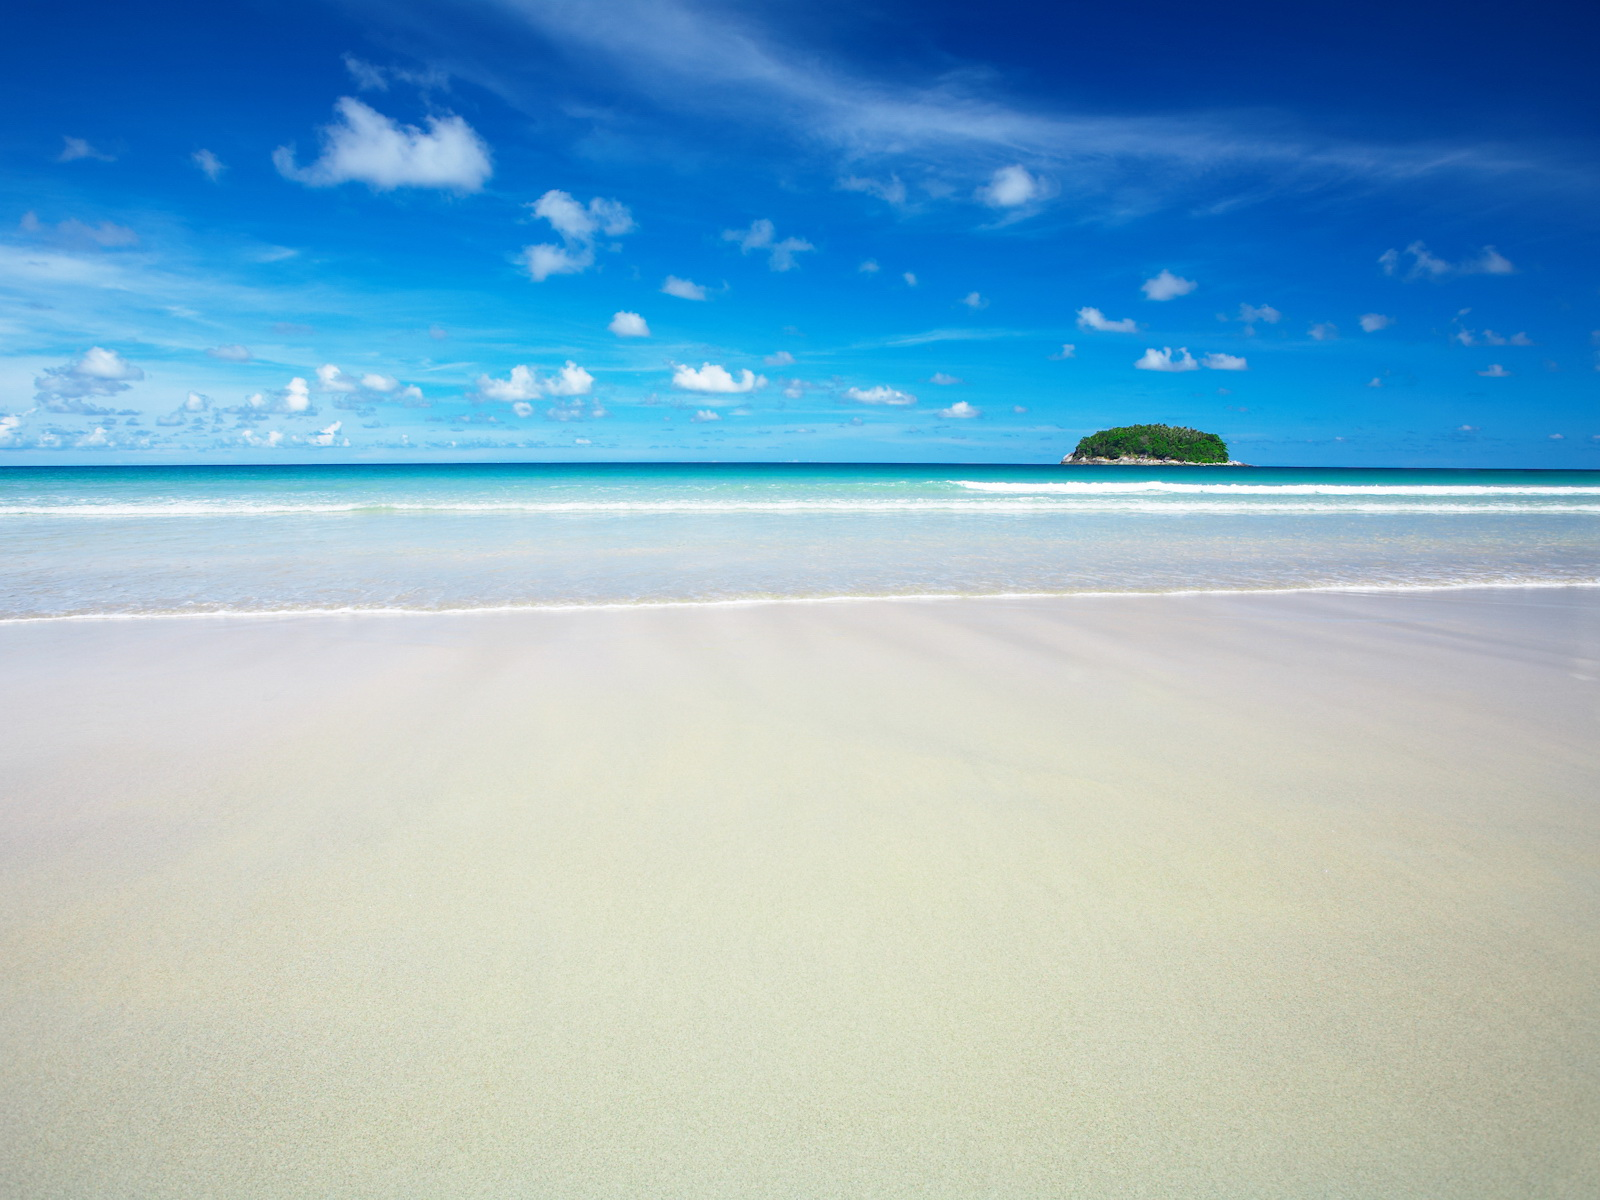 http://4.bp.blogspot.com/-z7z9EwEGVB0/T6pZdrpgfeI/AAAAAAAABnY/P3OYDidNgDs/s1600/The-best-top-desktop-beach-wallpapers-hd-beach-wallpaper-18.jpg